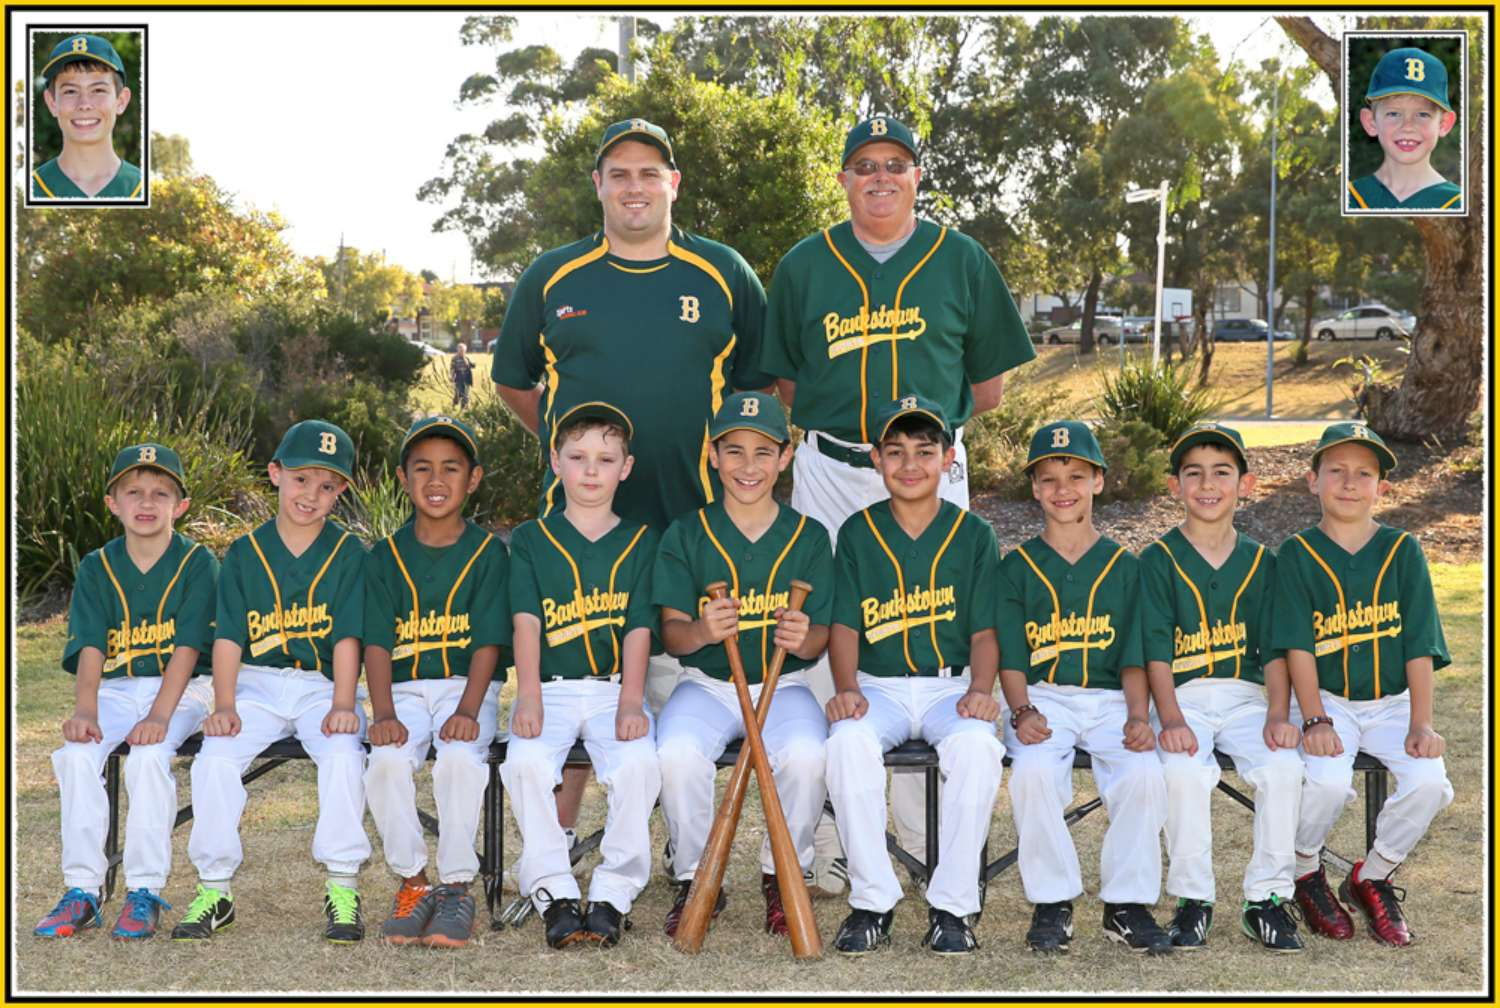 2013-14 U9 Dodgers Team with insets-1500.jpg